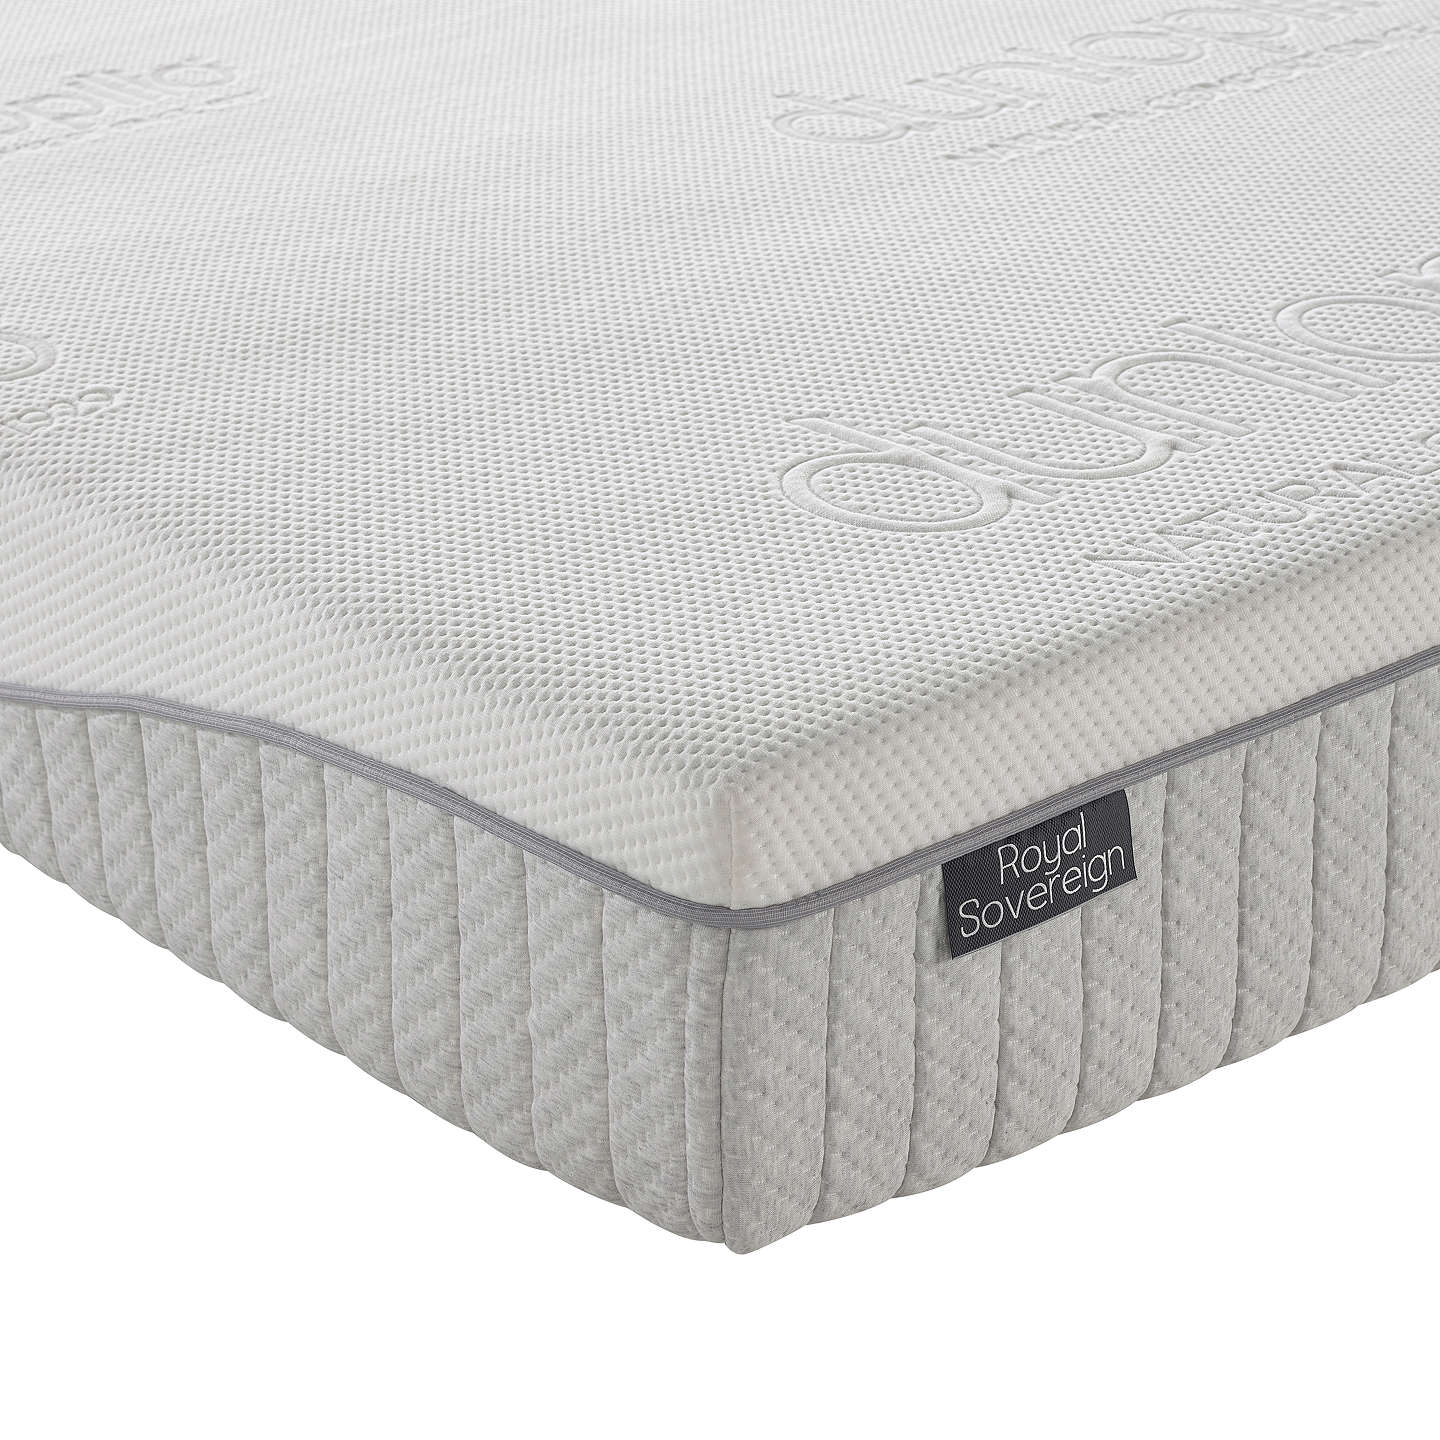 folded sleep euro top silver adjustable bed systems size customizable comfort sterling mattress with products base queen lining back latex